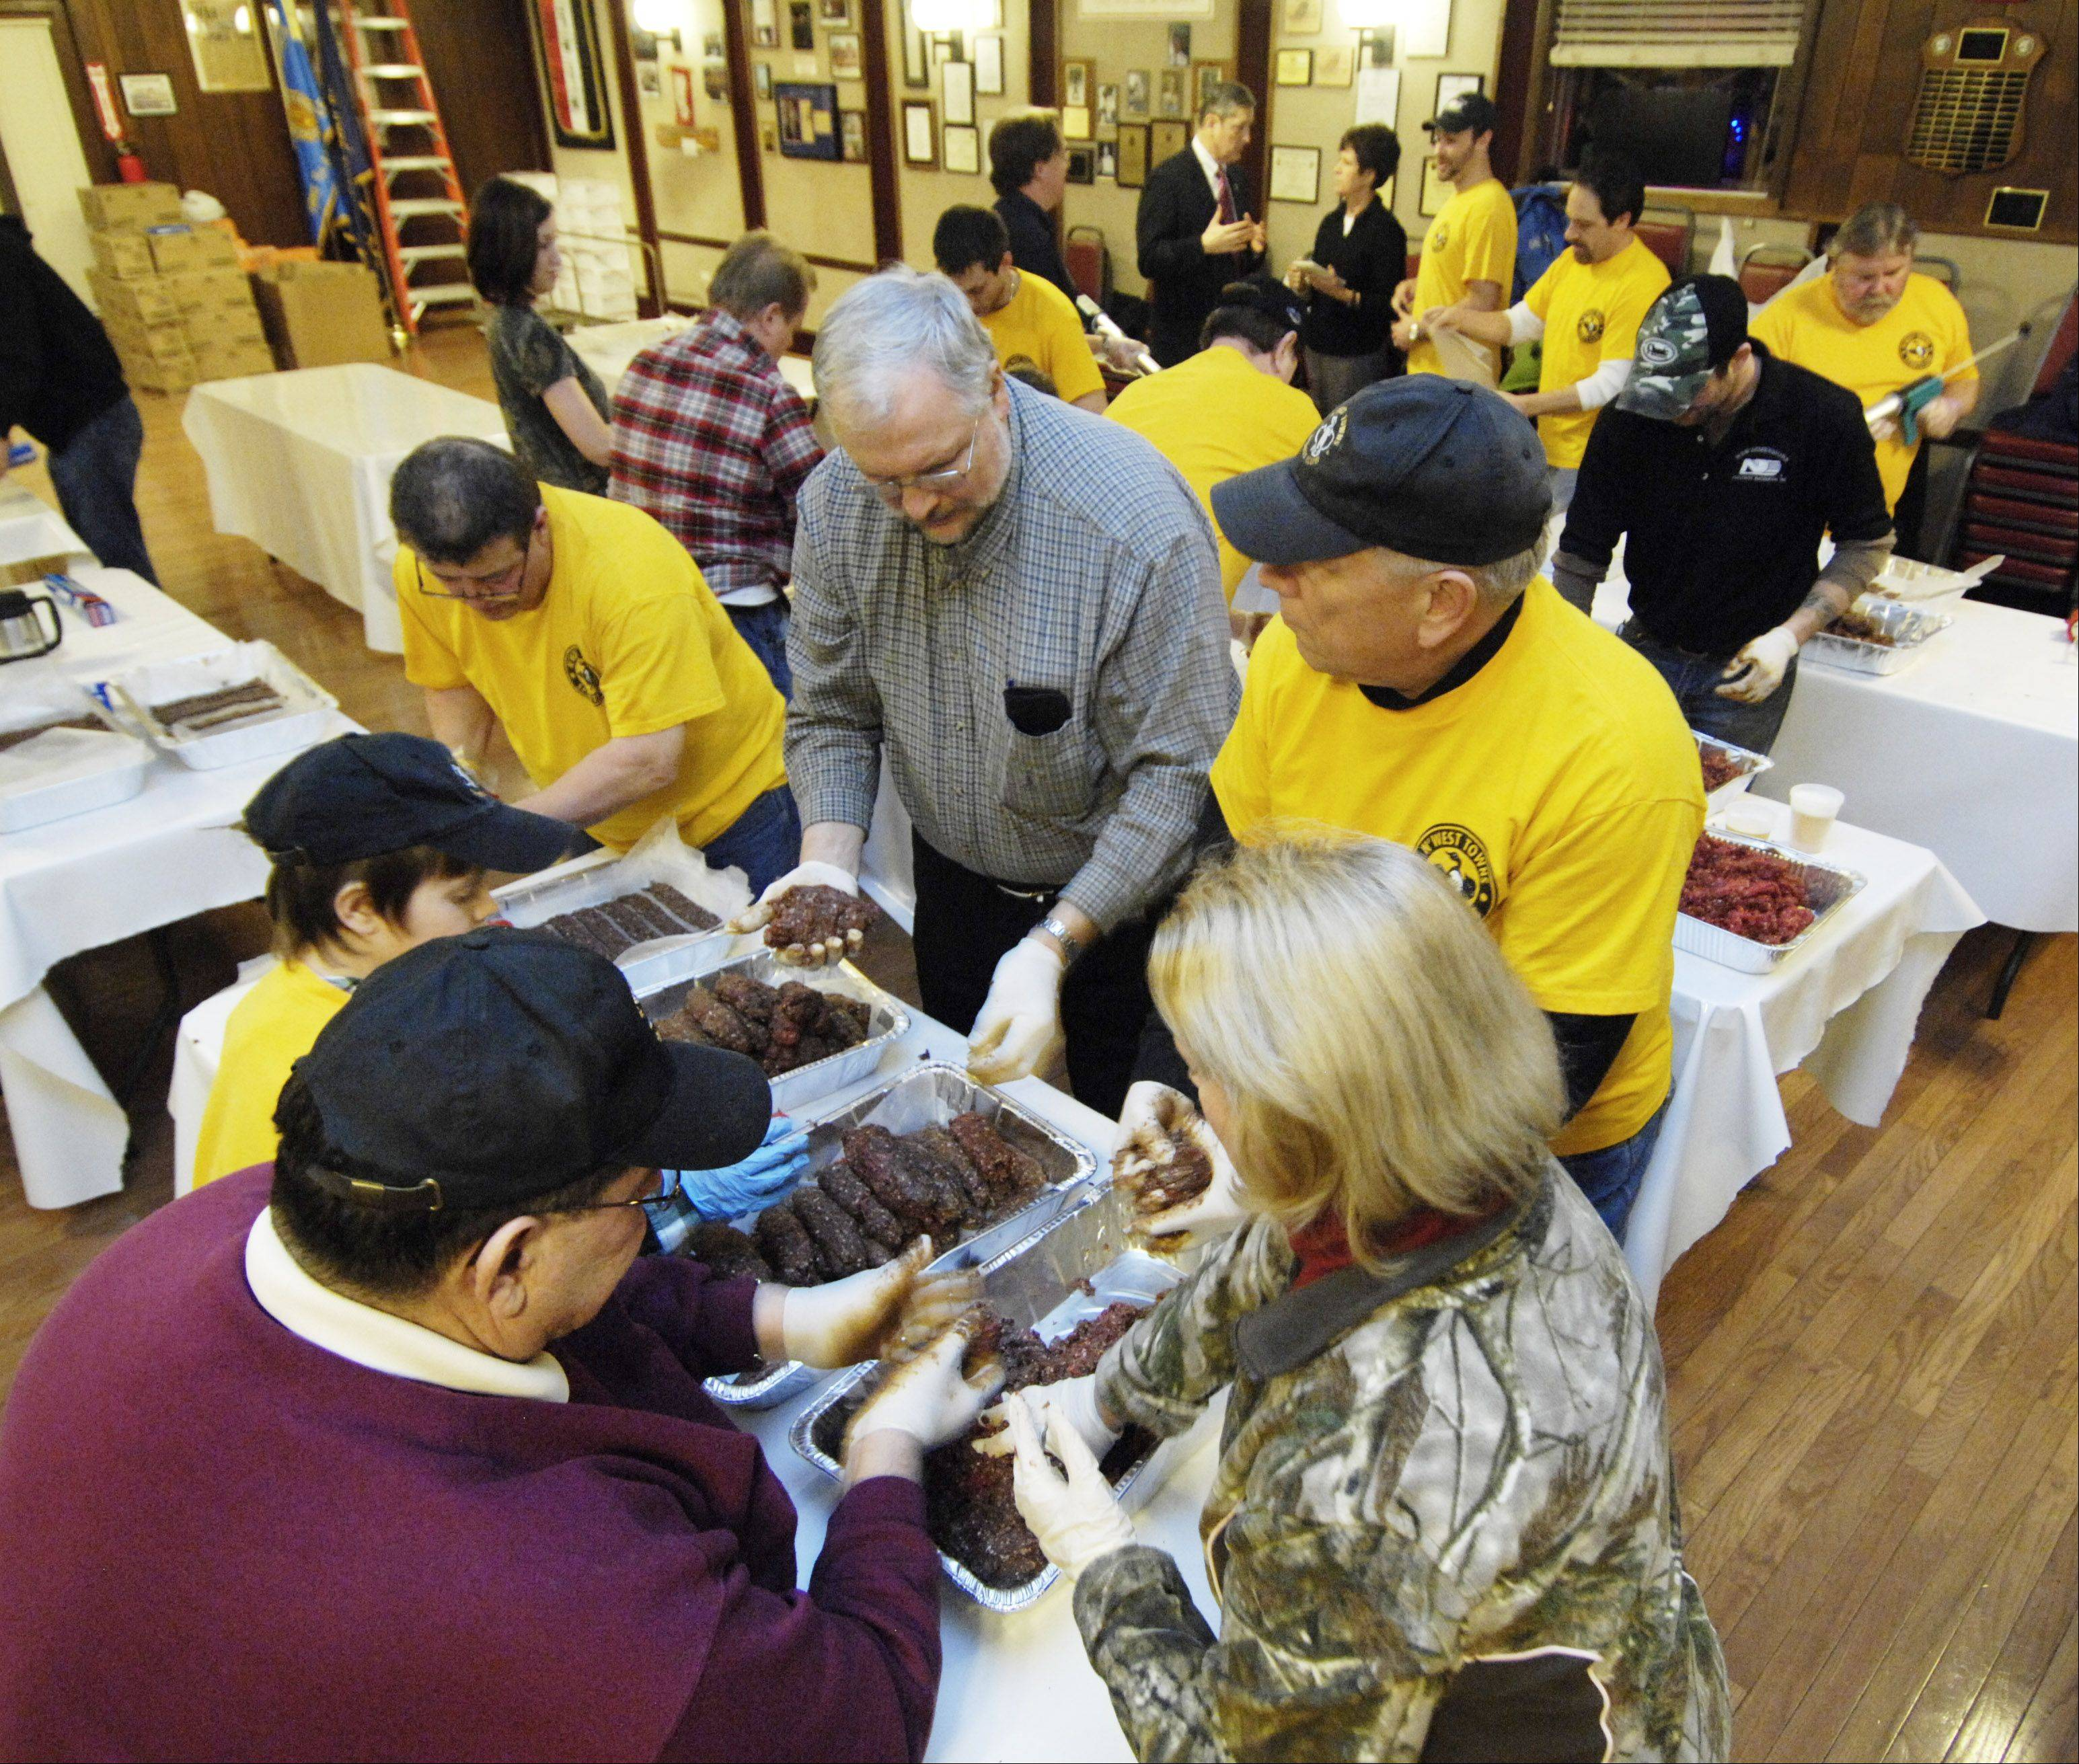 Volunteers from the Northwest Towns Sportsmen's Club met in Arlington Heights earlier this year to prepare jerky made from fresh venison for troops stationed in Afghanistan. One soldier on the receiving end, Army Capt. Court Harris of Arlington Heights, met with members late last month to thank them for their efforts.